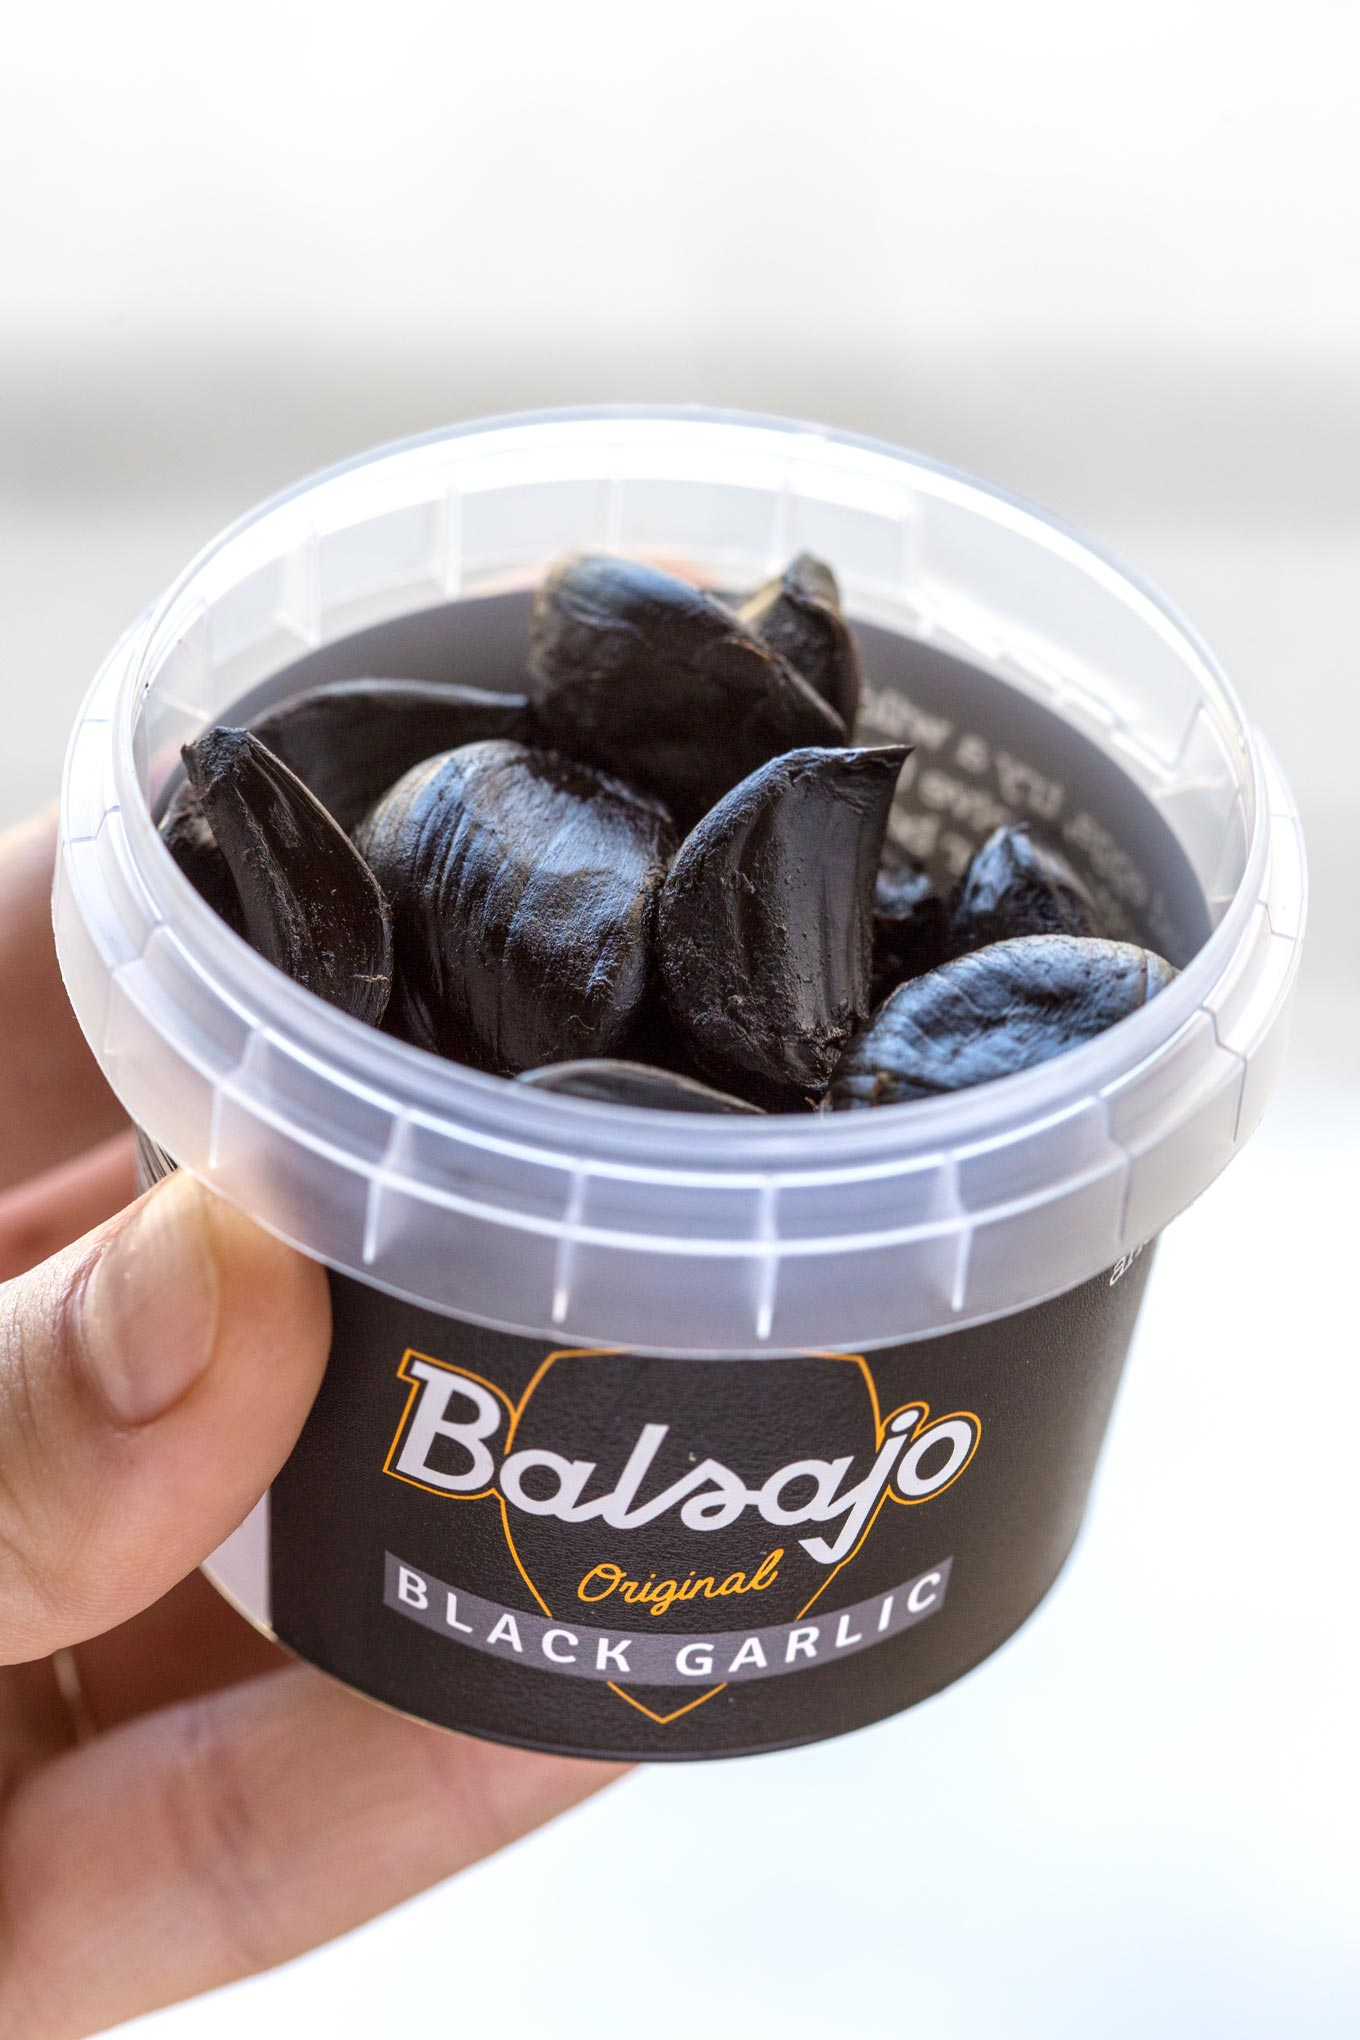 Balsajo Black Garlic Cloves in a small tube